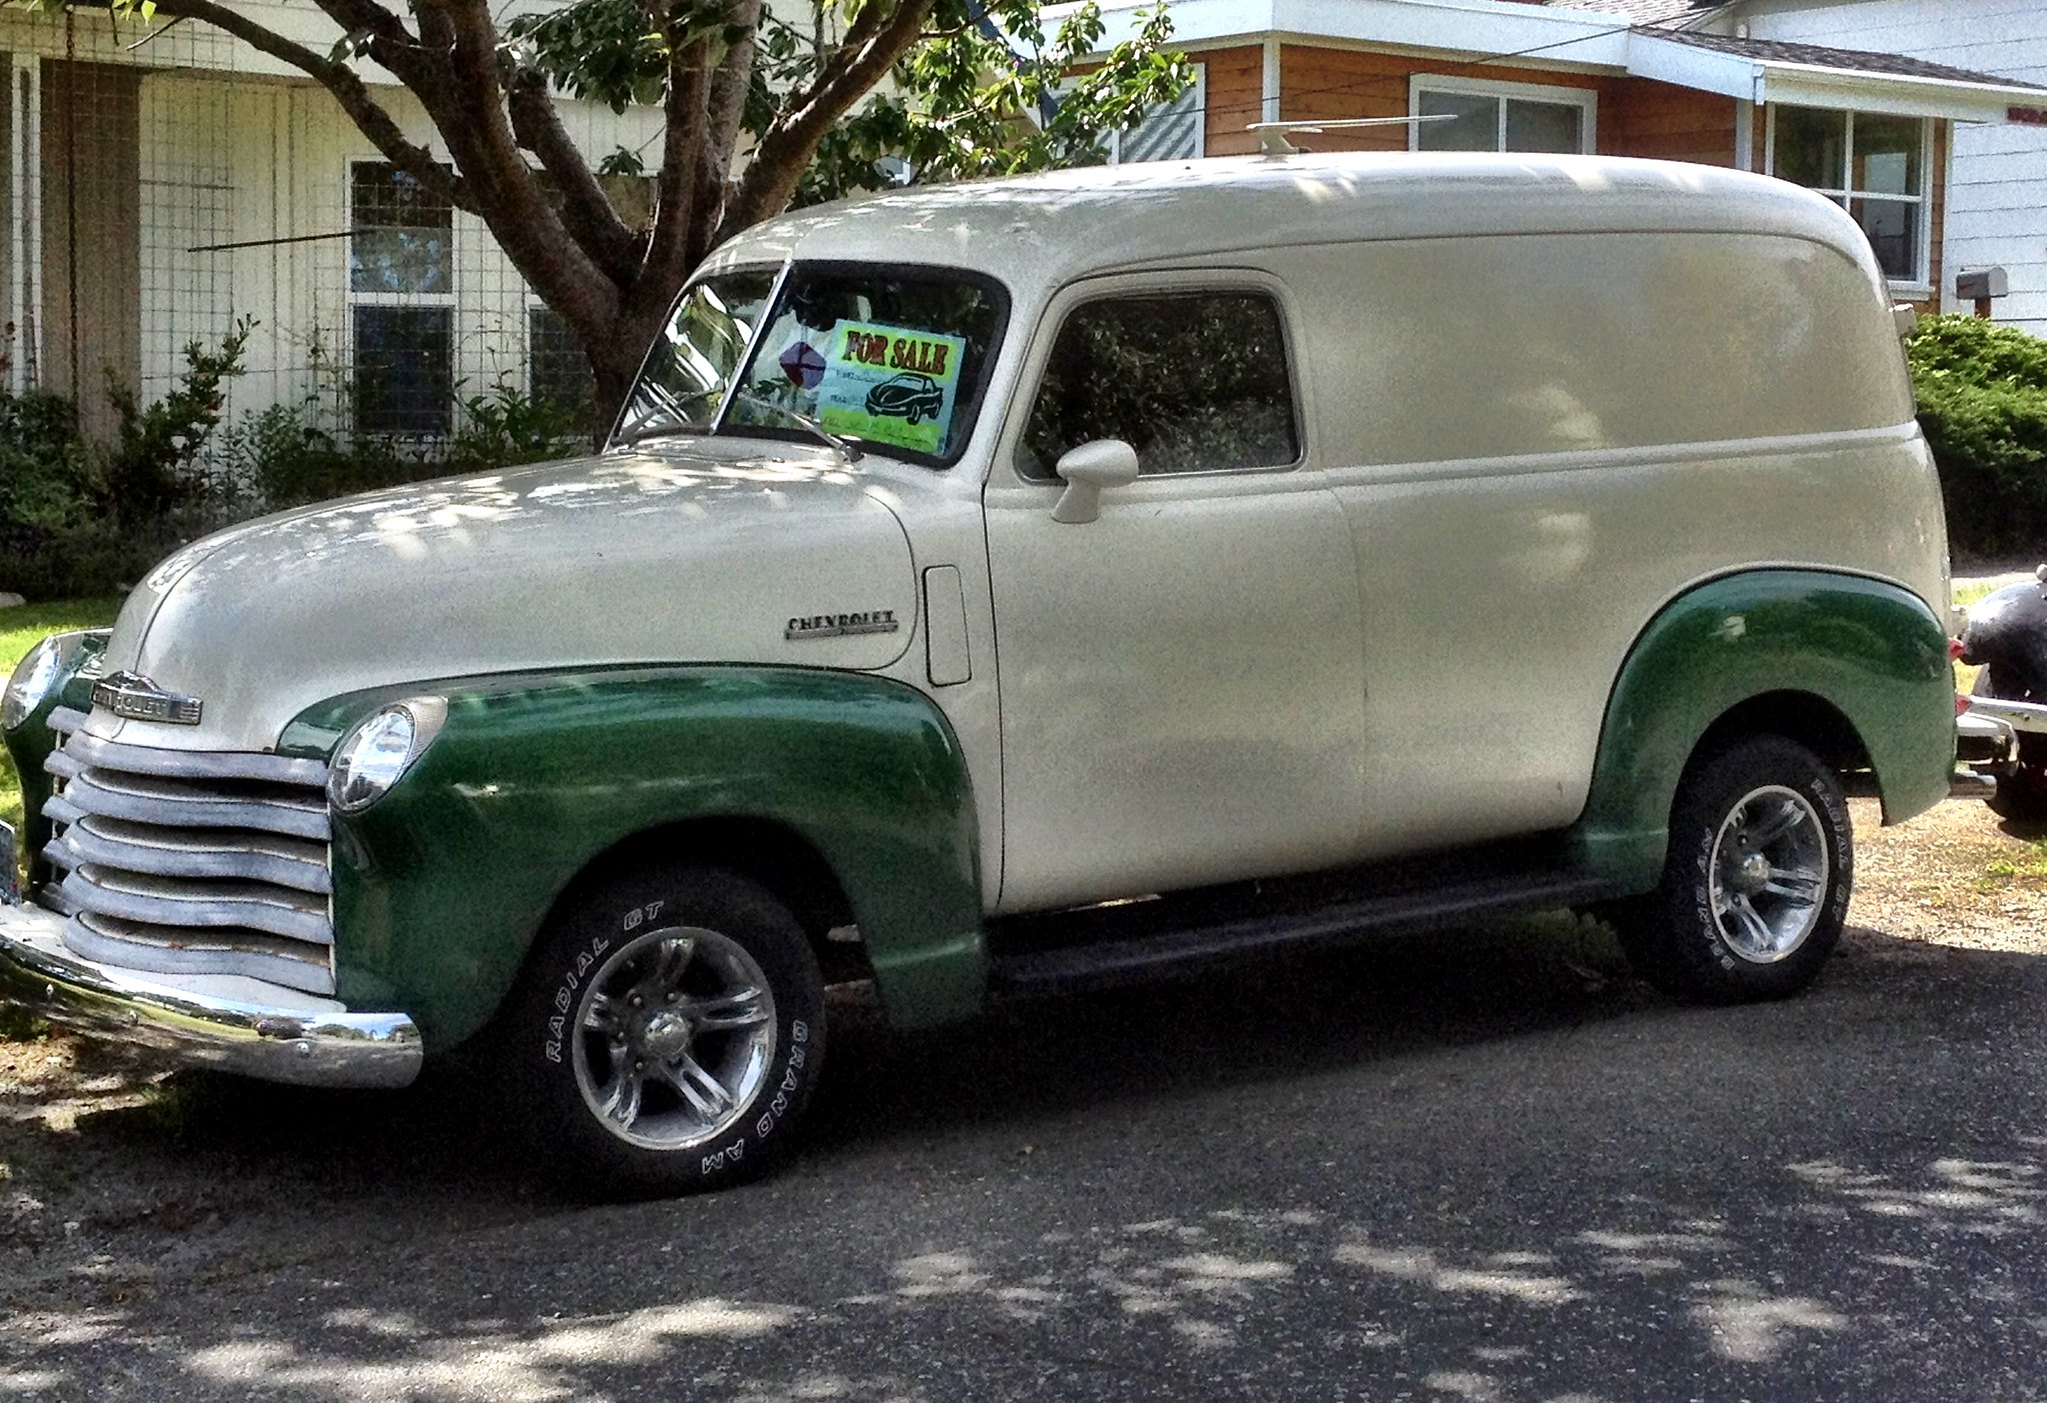 1948 Chevy Thriftmaster Panel Truck 25000 Seemed Steep